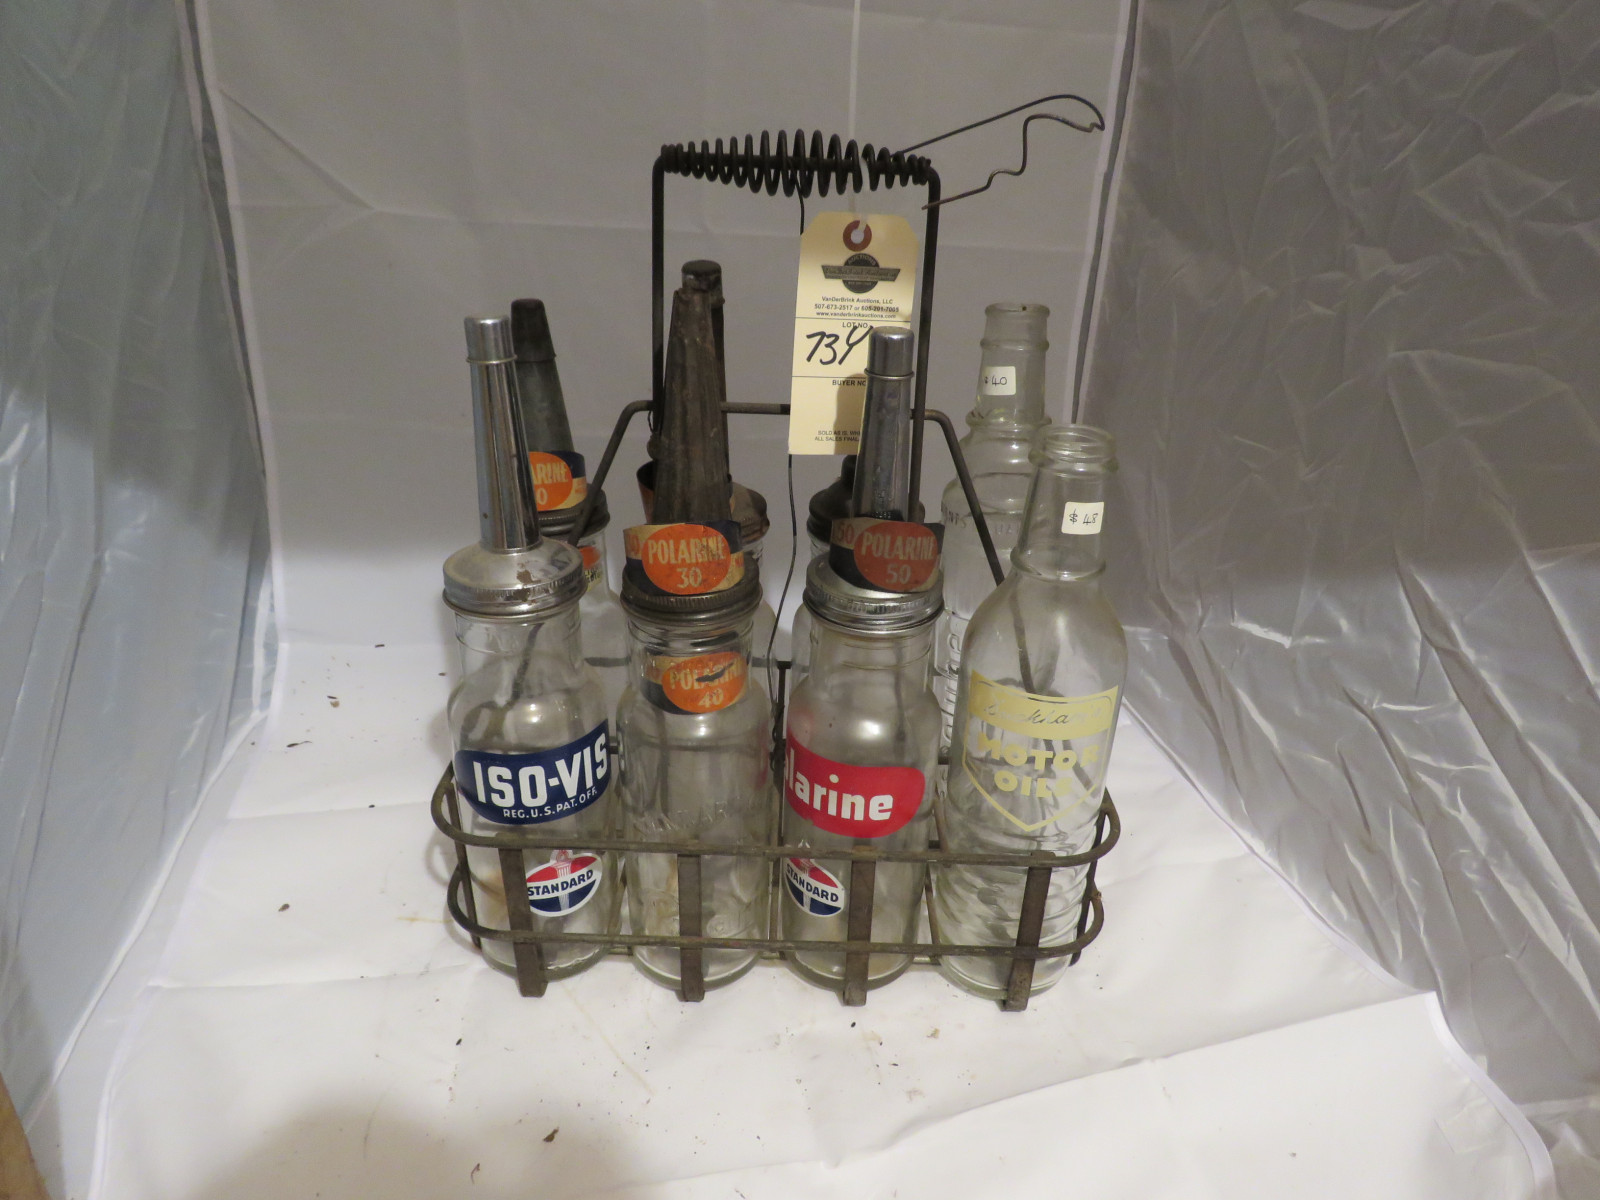 Mixed Glass Oil Bottles and Rack - Image 1